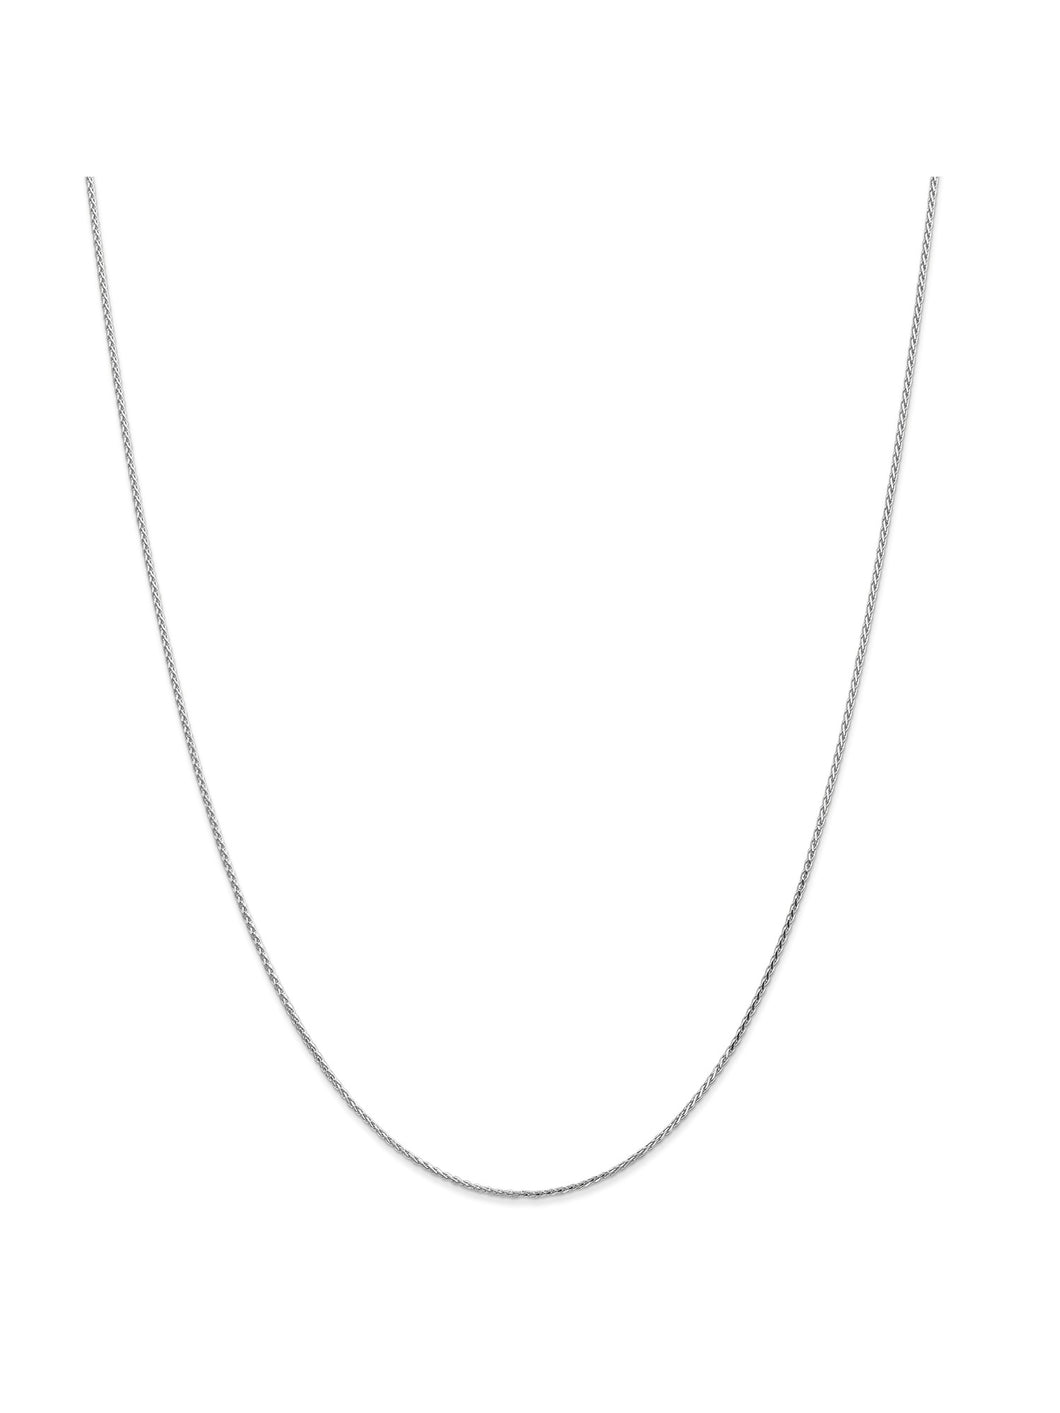 14k White Gold 1mm Round Wheat Chain Necklace